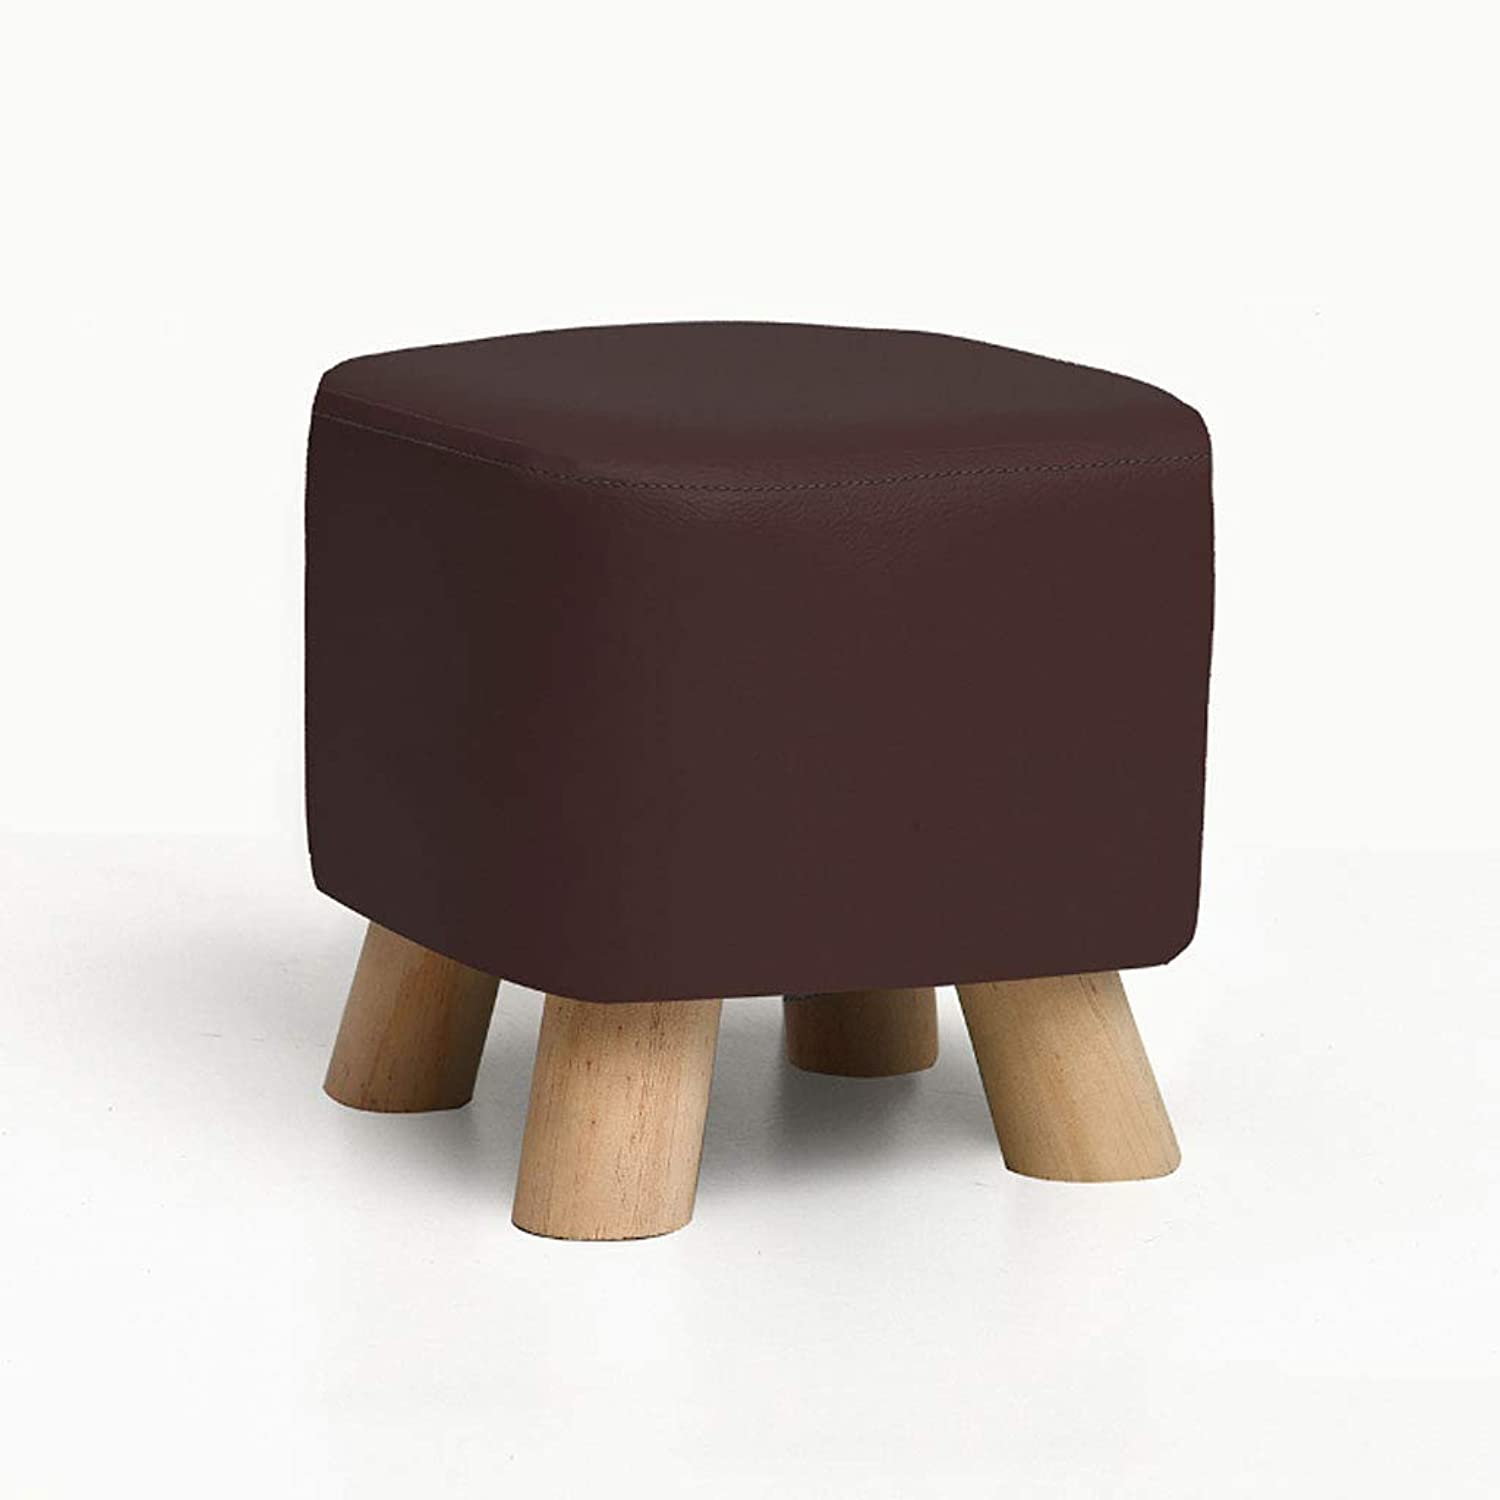 NJ STOOLS- Solid Wood shoes Stool Creative Square Stool Fabric Stool Sofa Stool Coffee Table Stool Home Stool (color   Coffee color, Size   28x28x25cm)